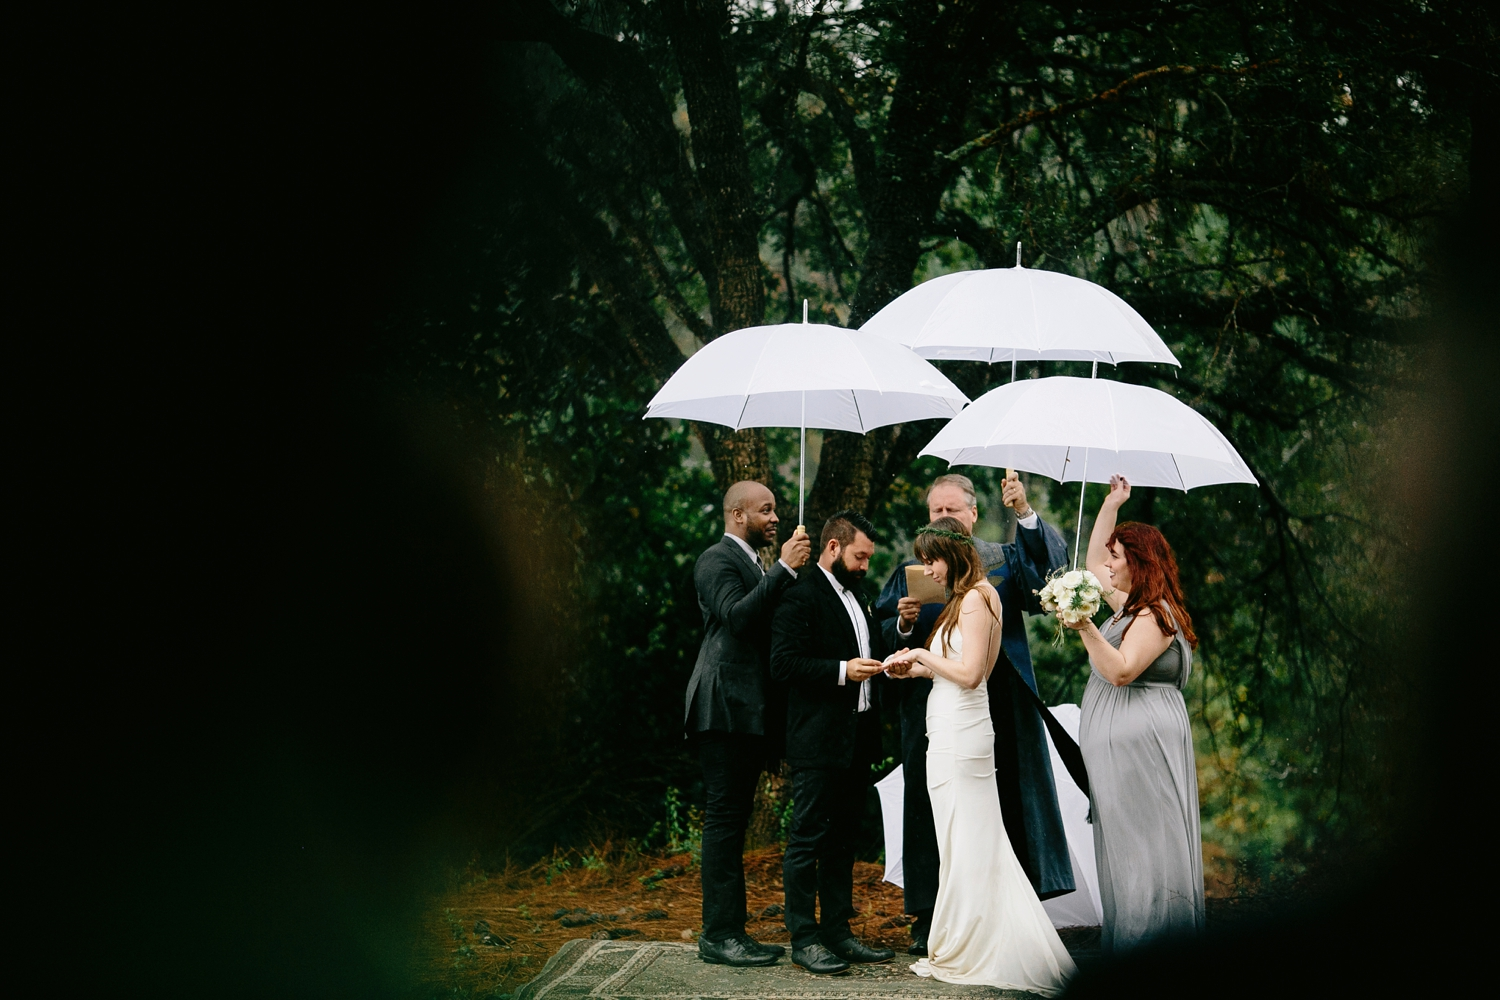 rainy-wedding-pictures-077